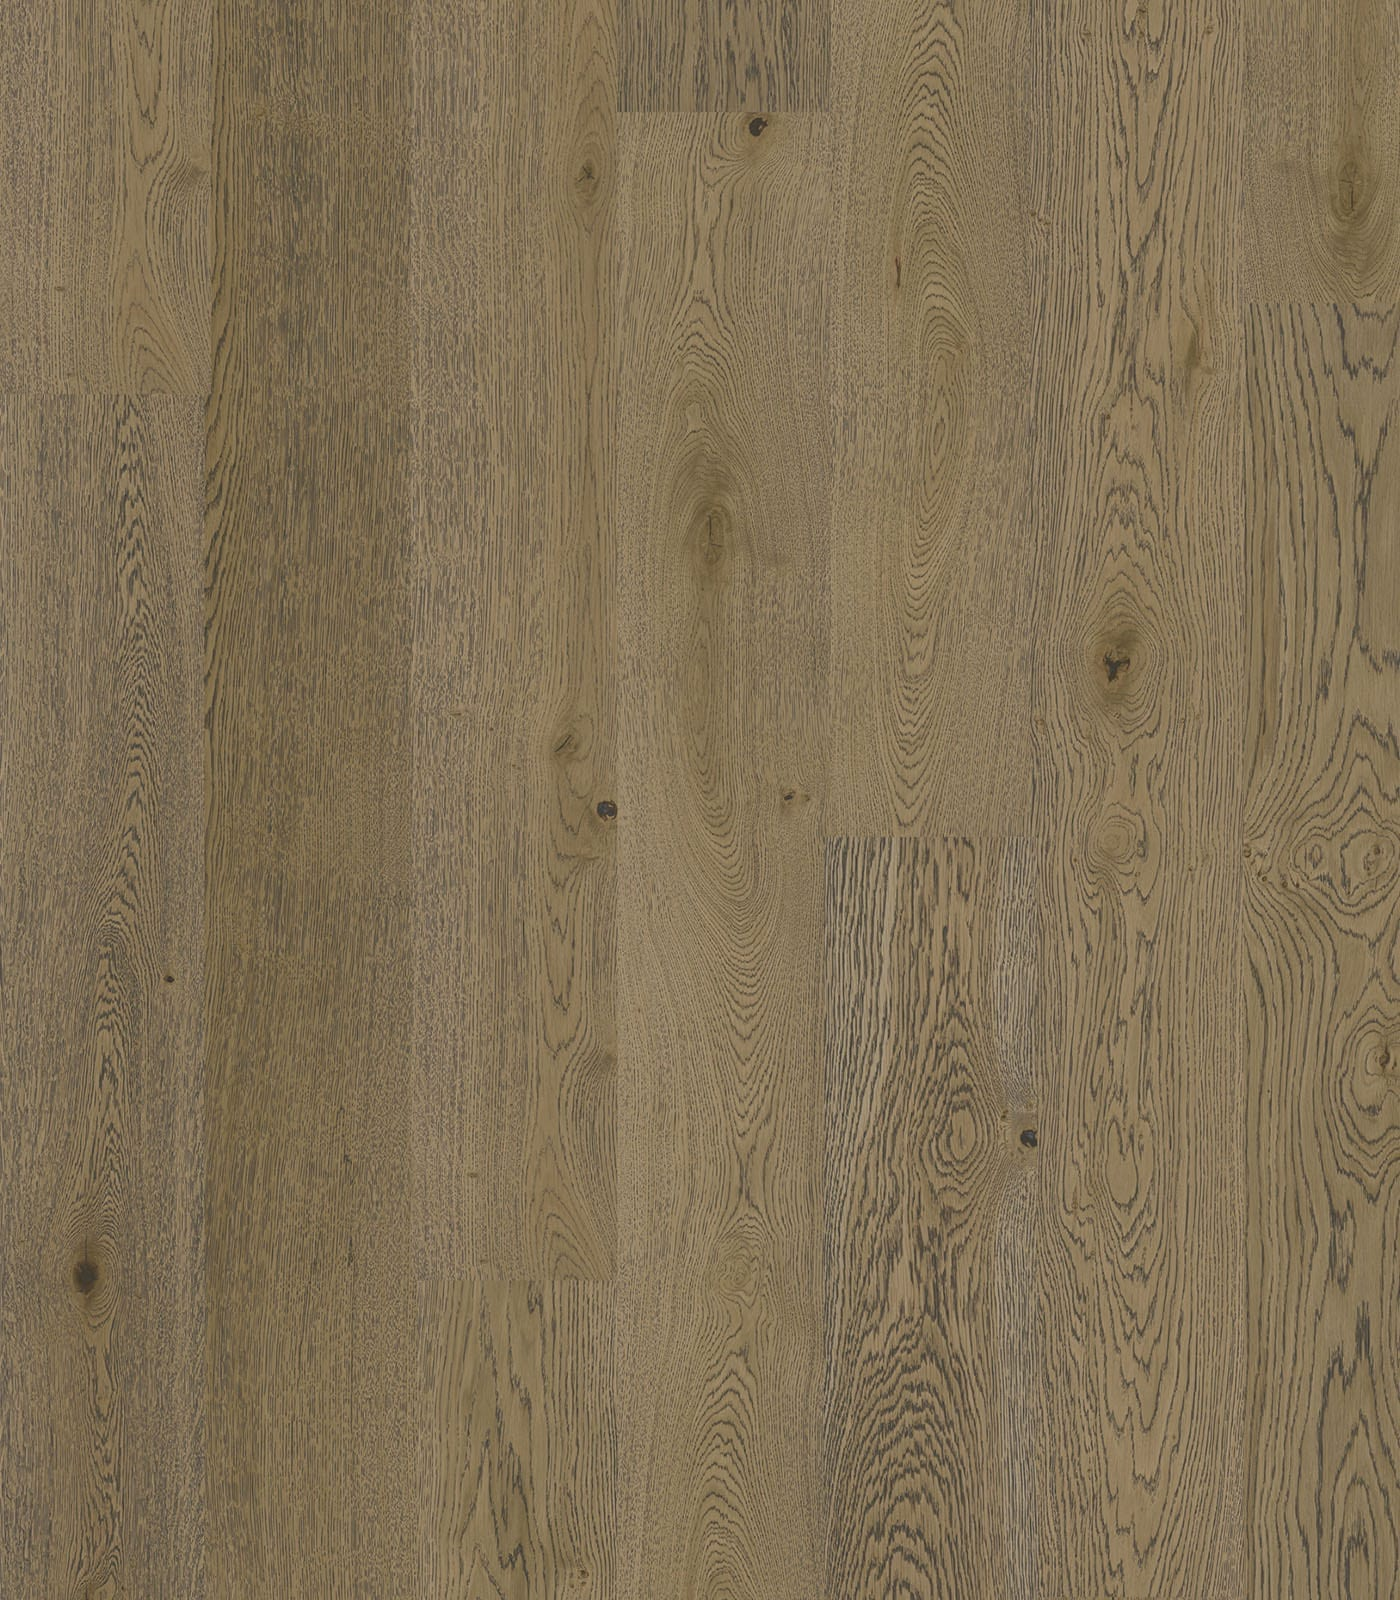 Charred- Engineered European oak flooring